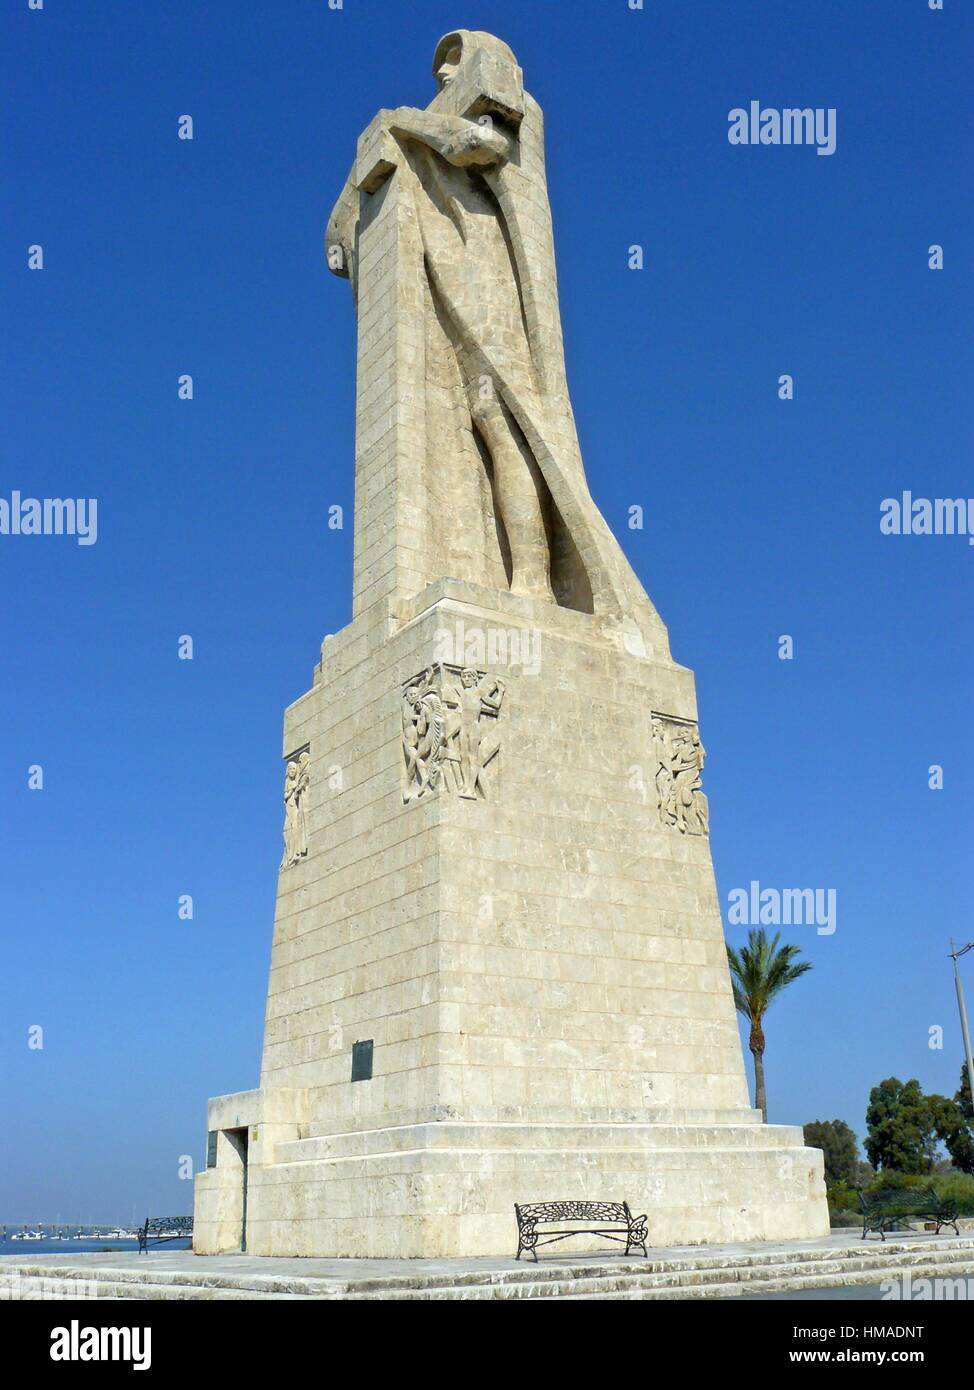 Huelva (Spain). Monument of Faith discoverer near the city of Huelva. - Stock Image